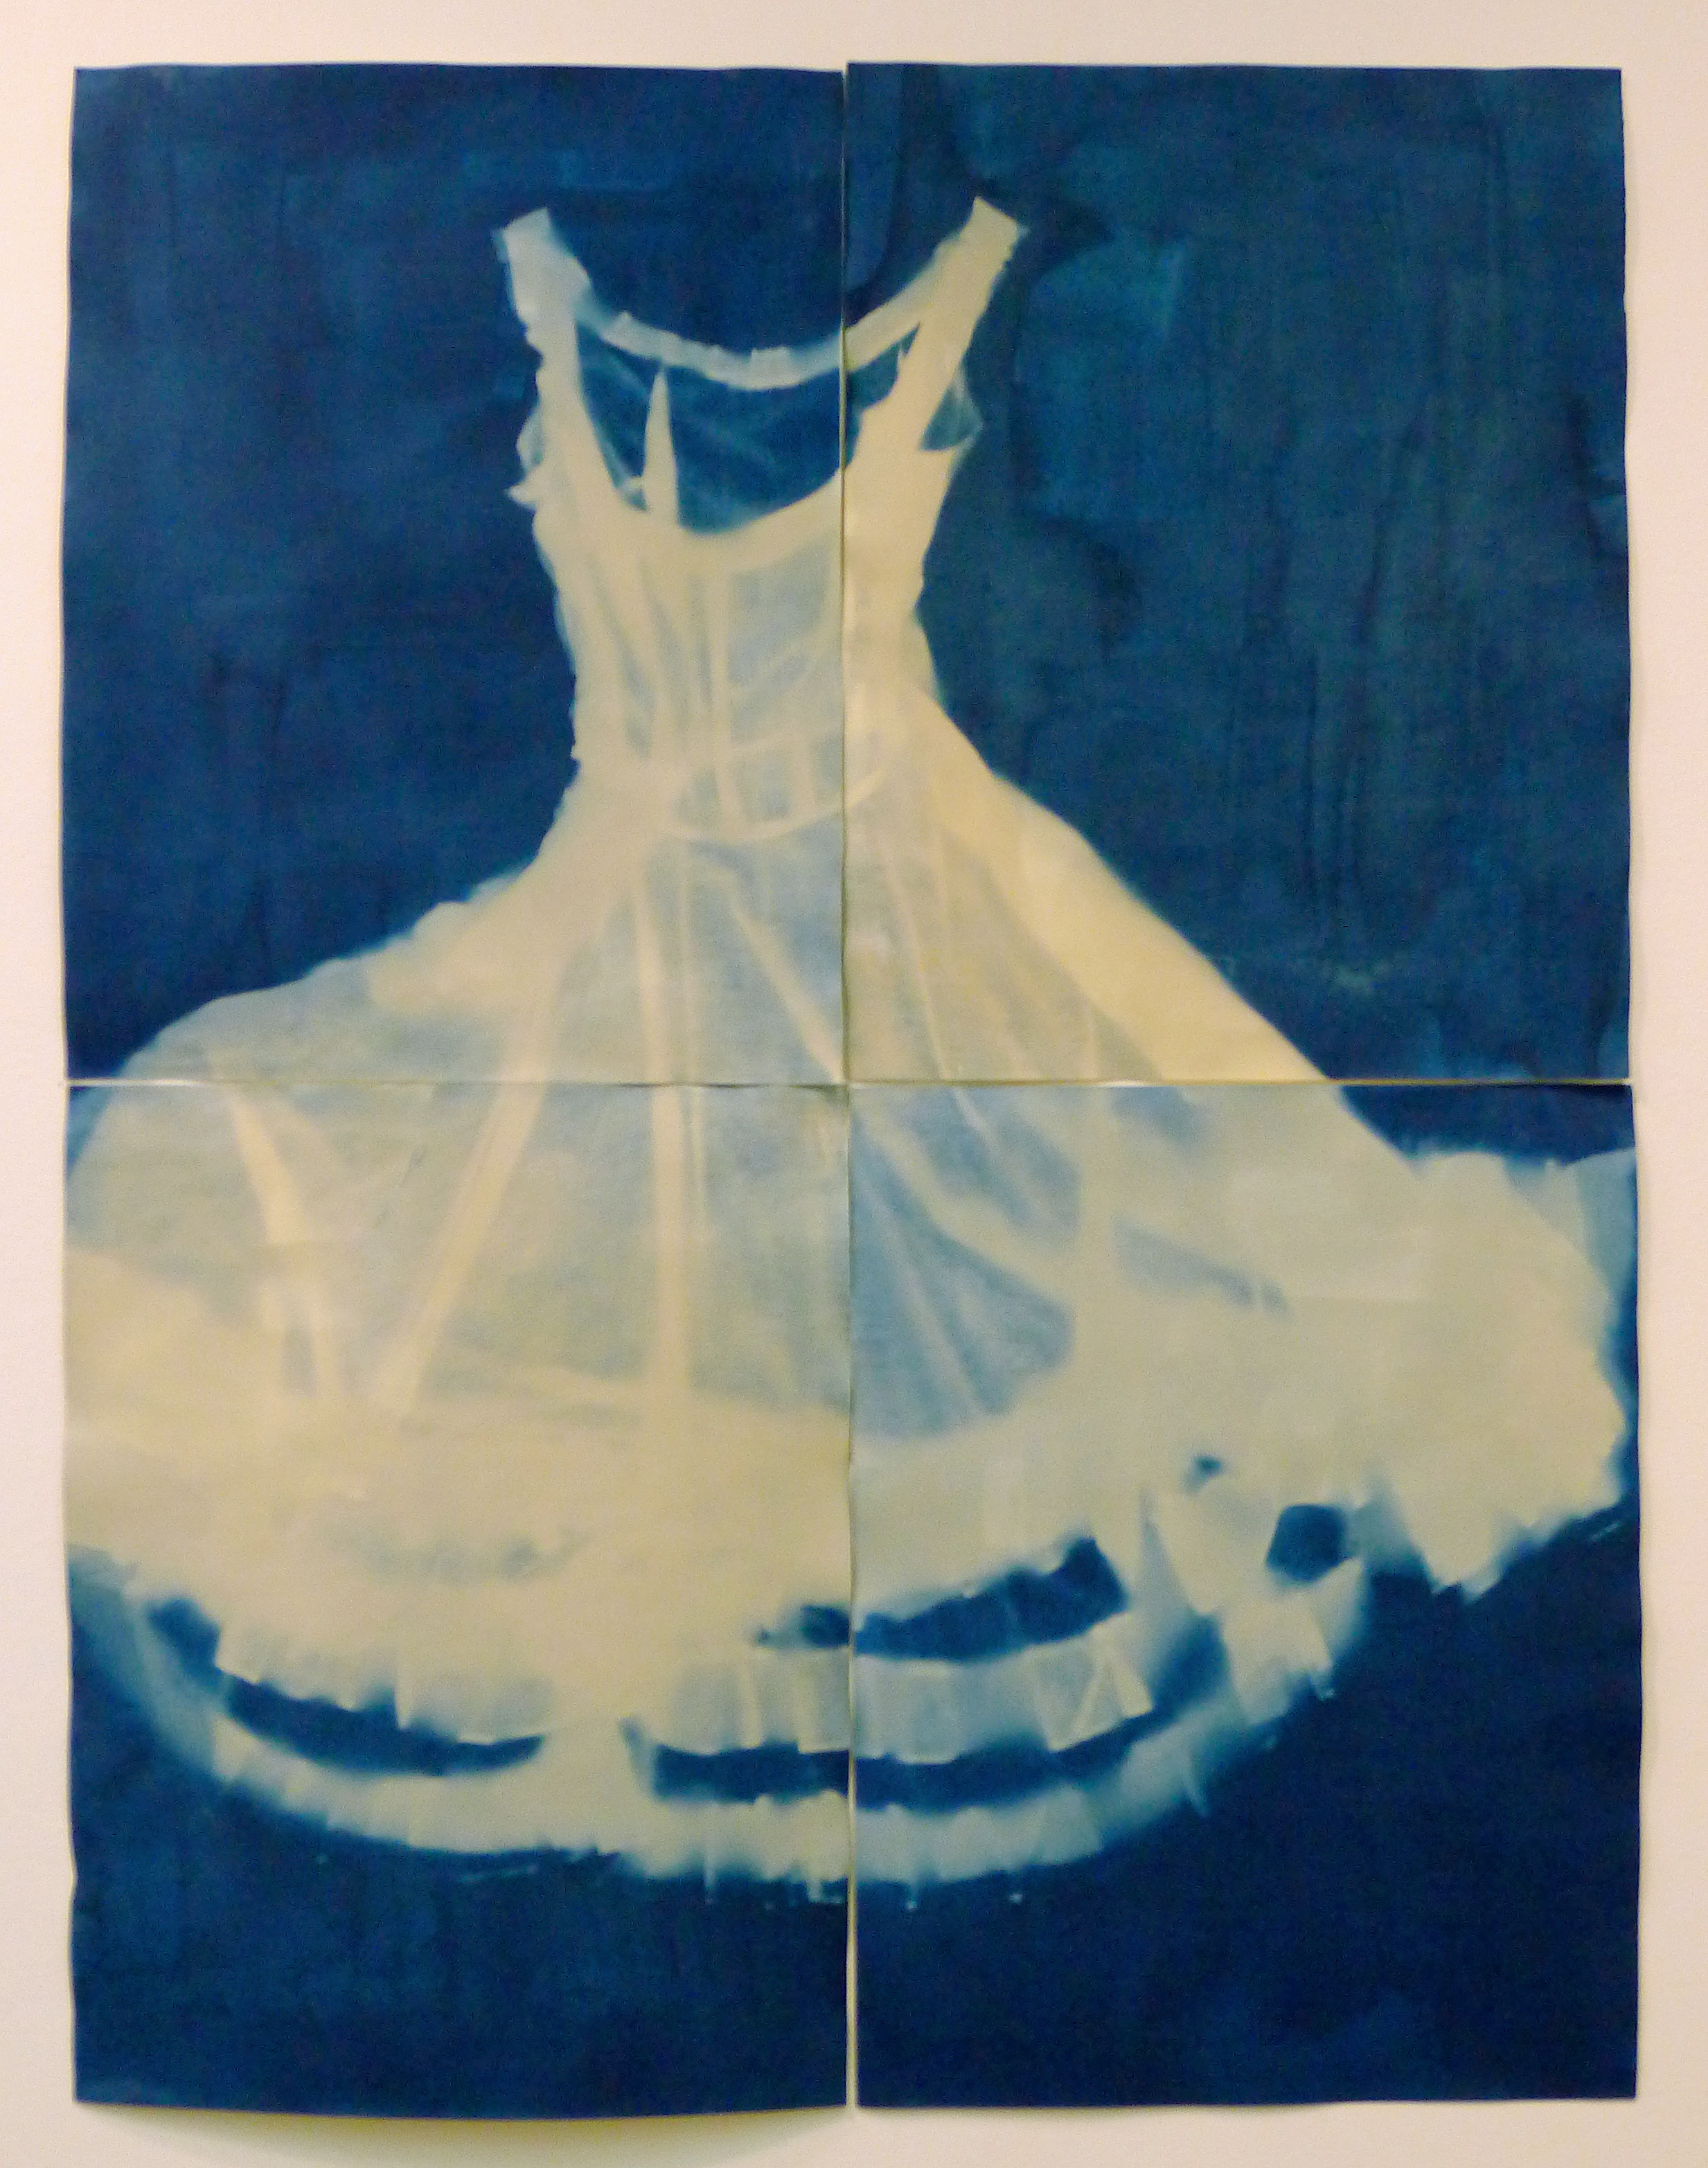 """My Mother's Striped Dress"" by Lucy Capehart. Cyanotype on Paper, 52""x40"", 2011."